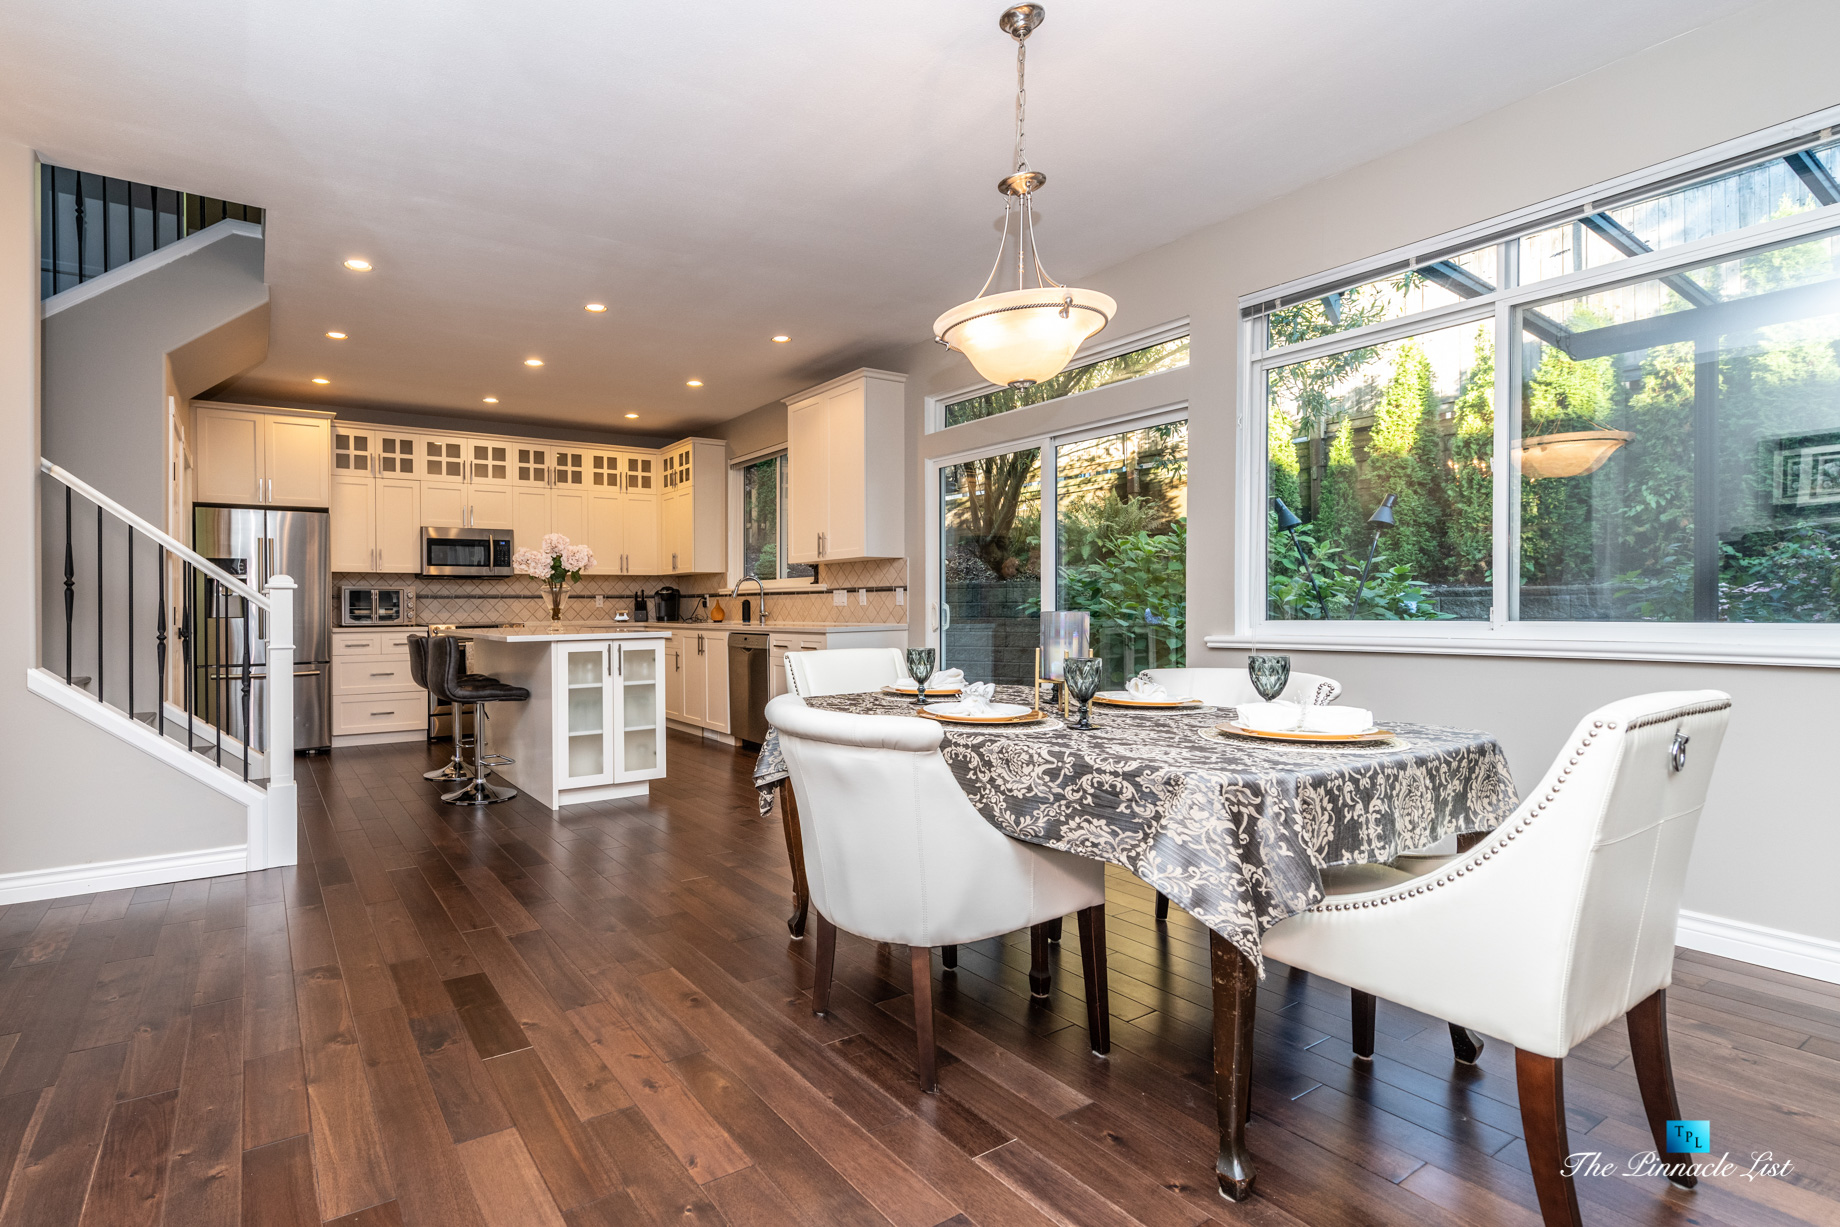 2366 Sunnyside Rd, Anmore, BC, Canada – Dining Room and Kitchen